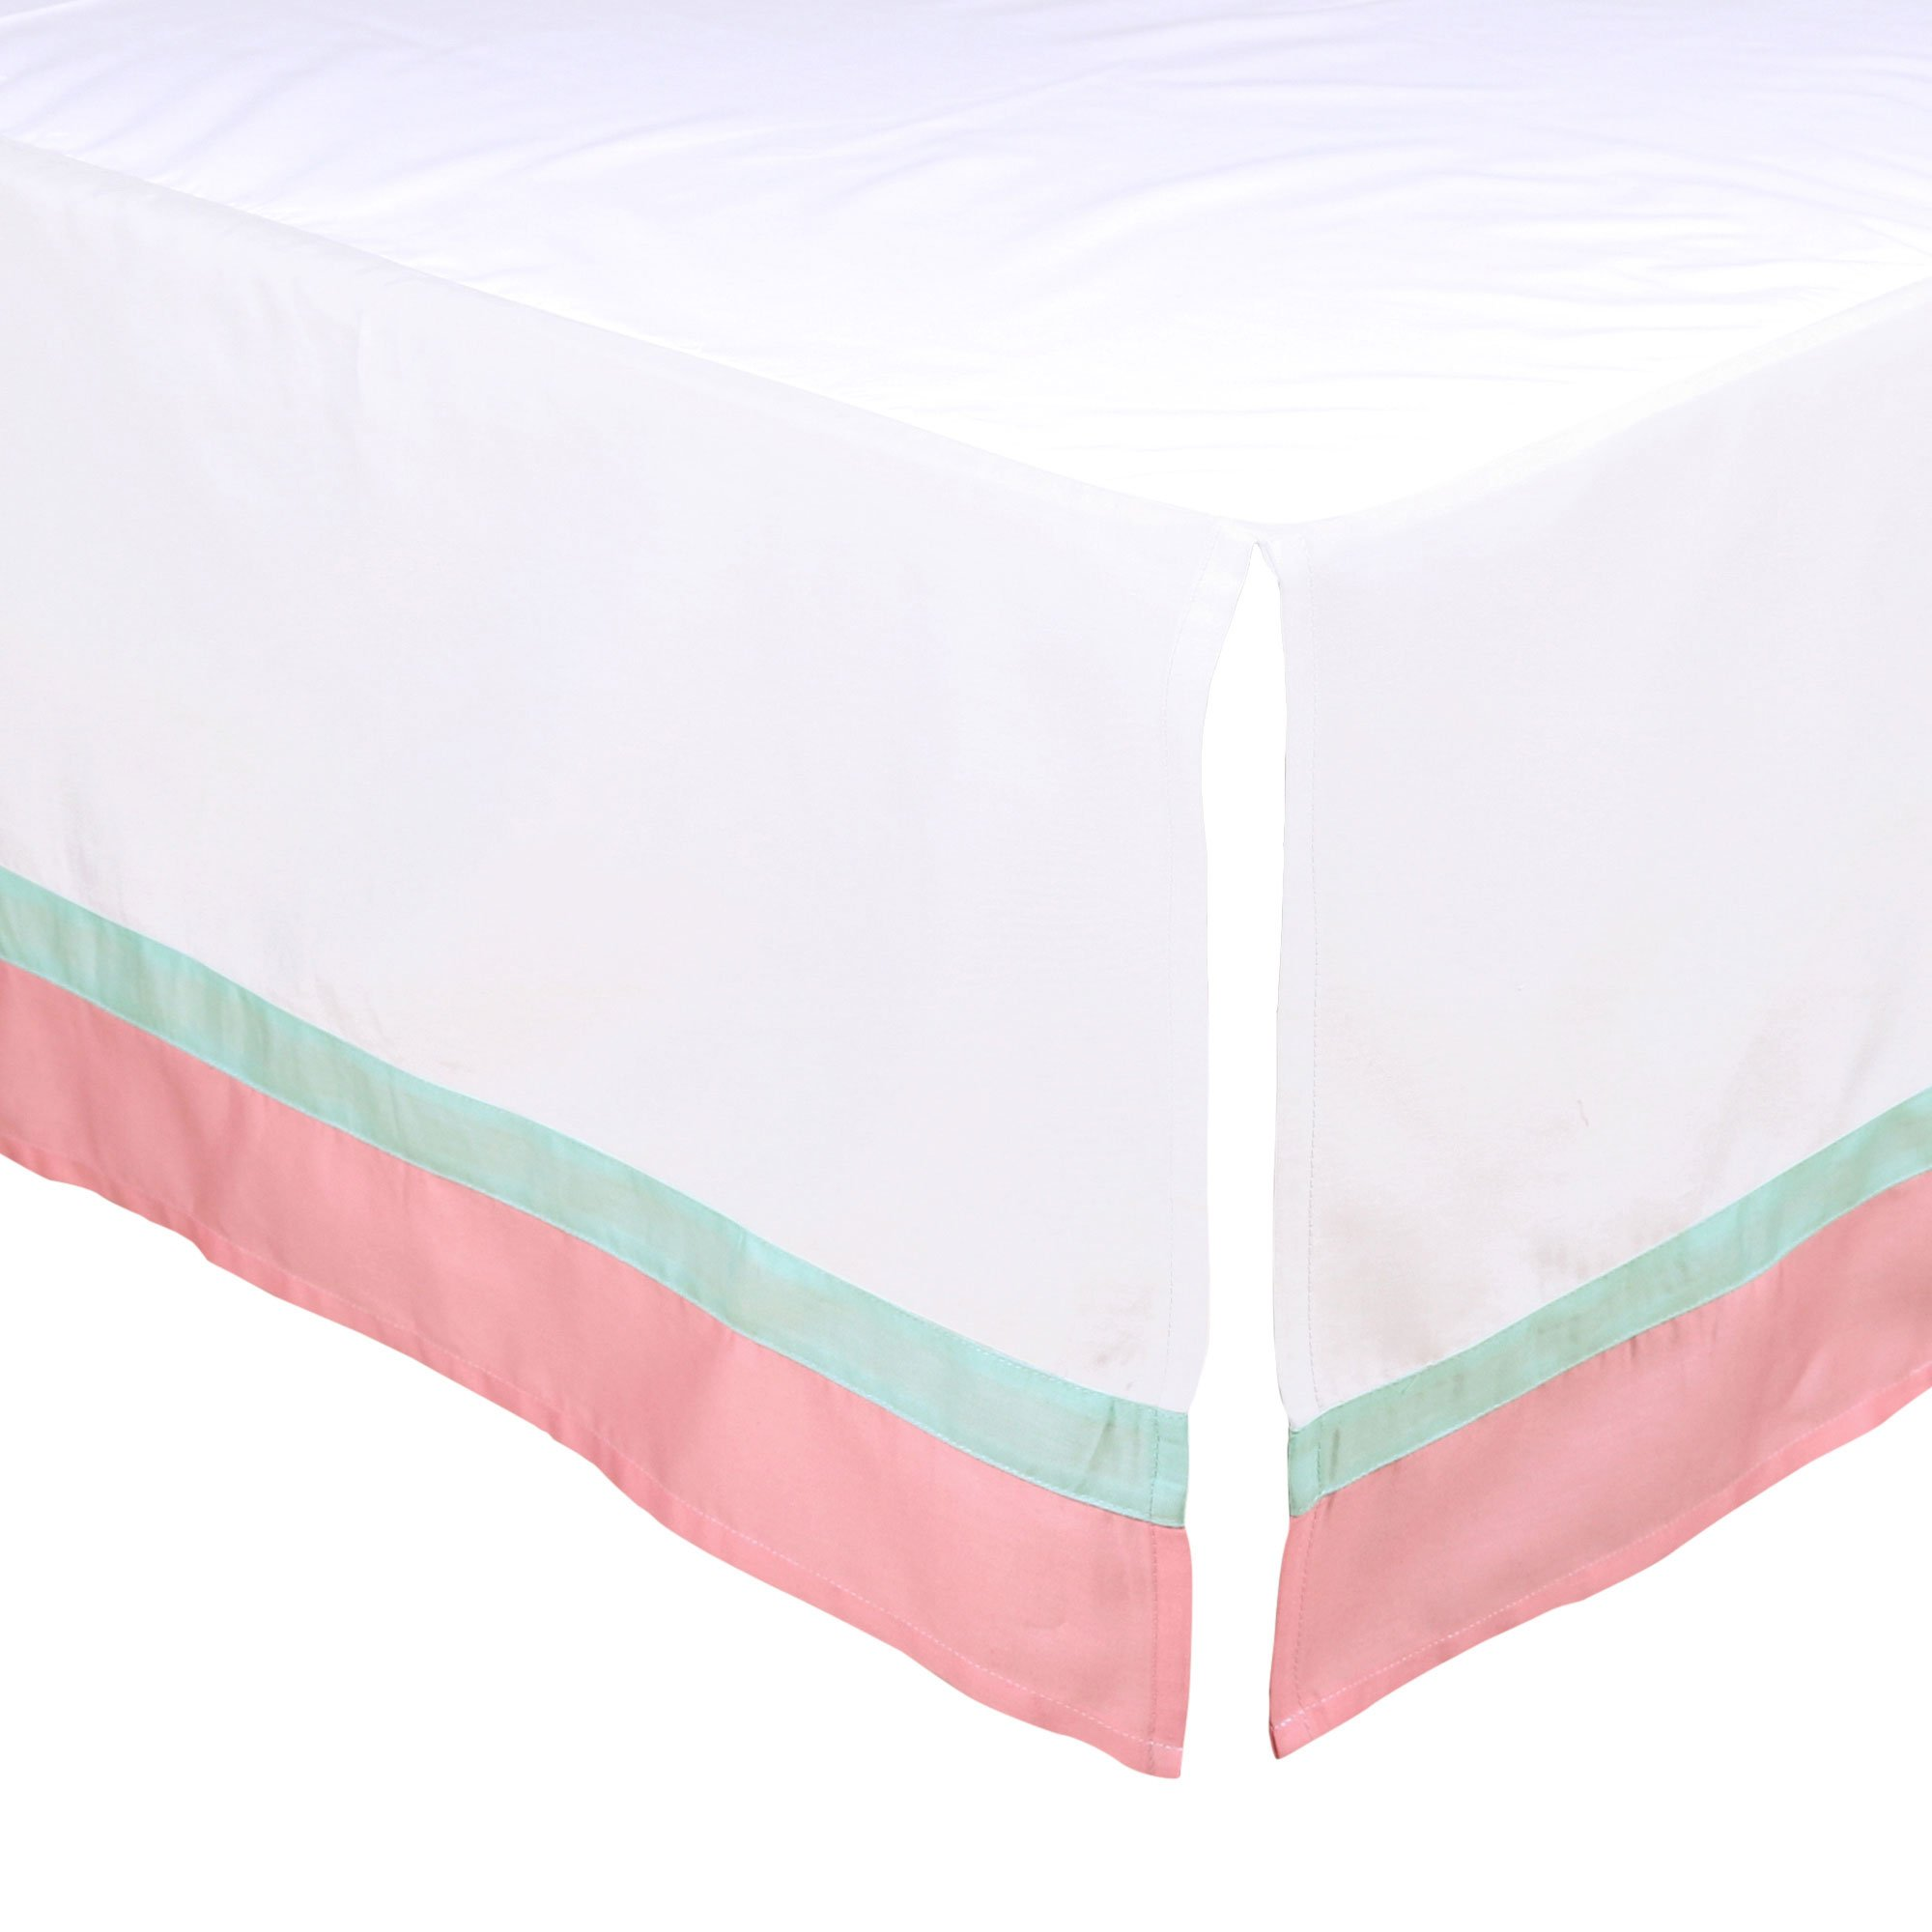 White Tailored Crib Skirt with Coral Pink and Mint Green Trim by The Peanut Shell by The Peanut Shell